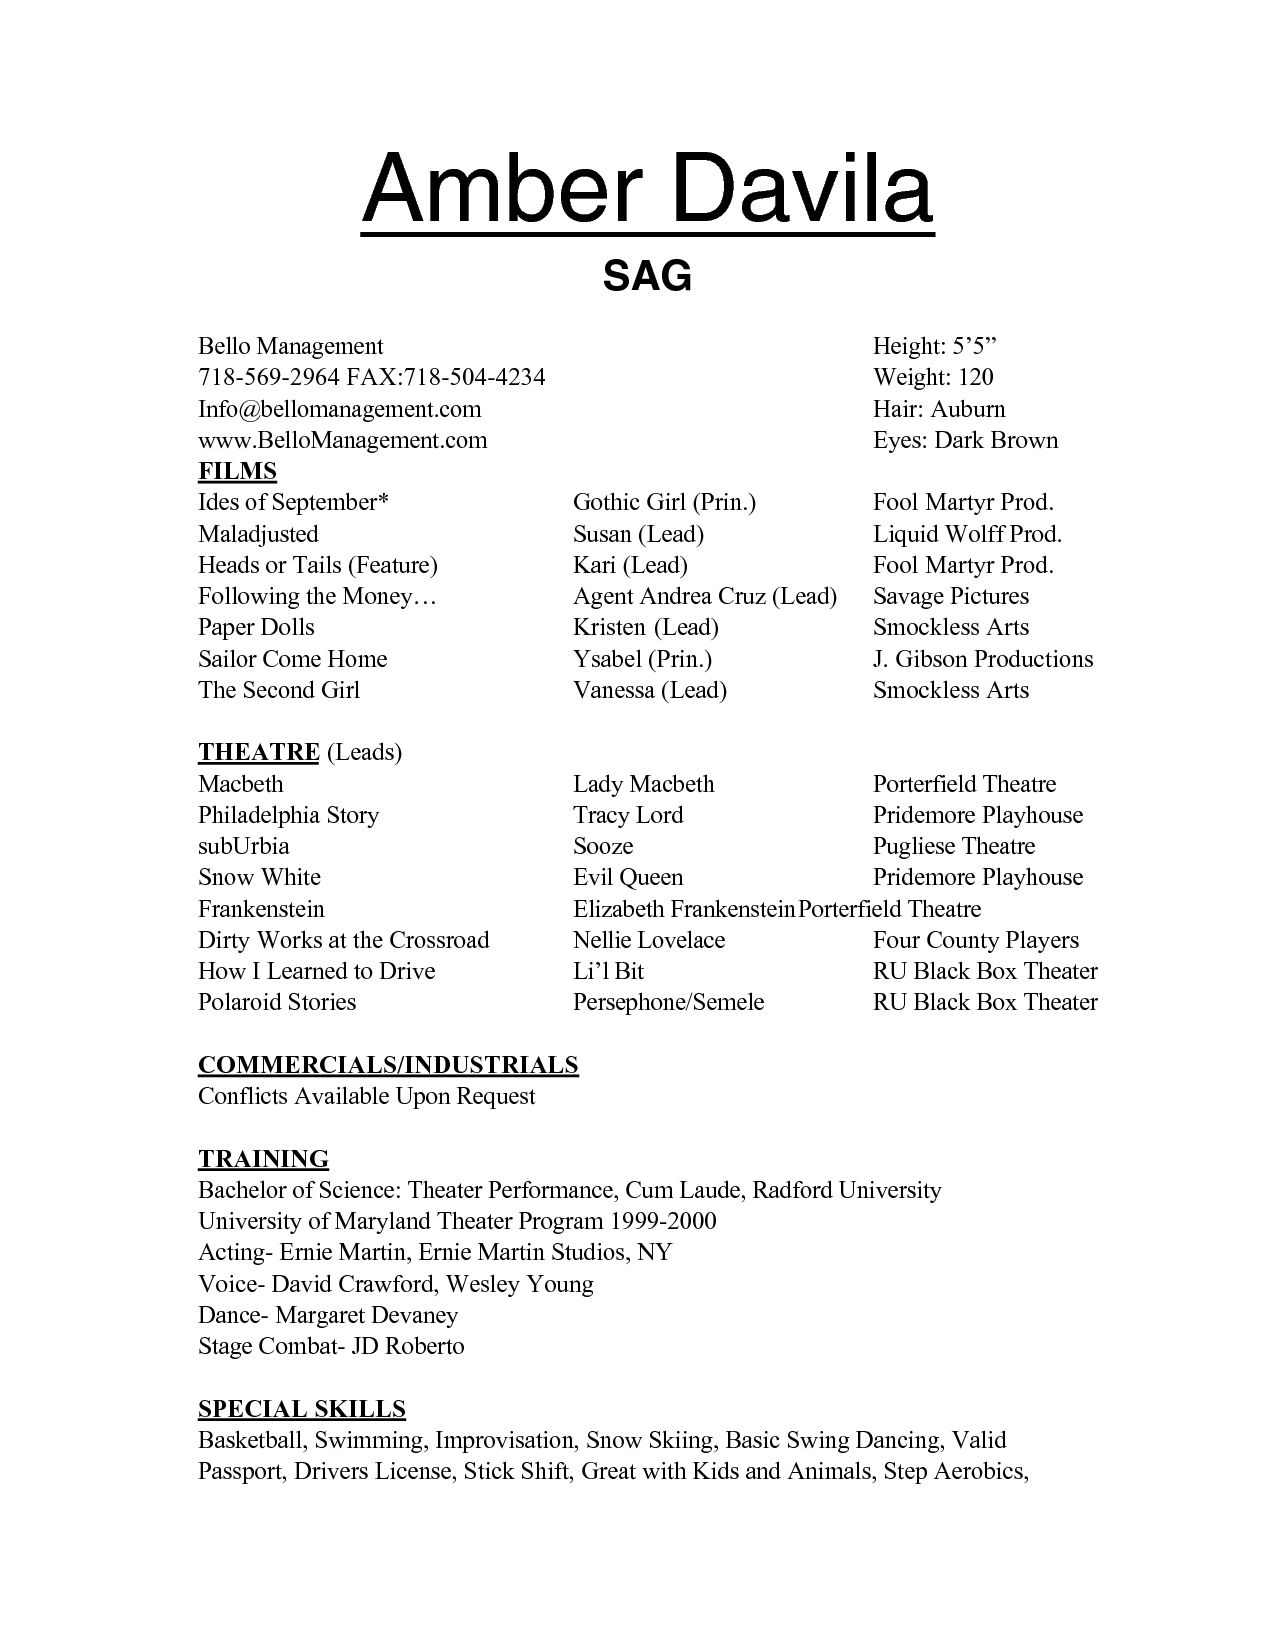 Technical Theatre Resume Template. Name Address Phone Number ...